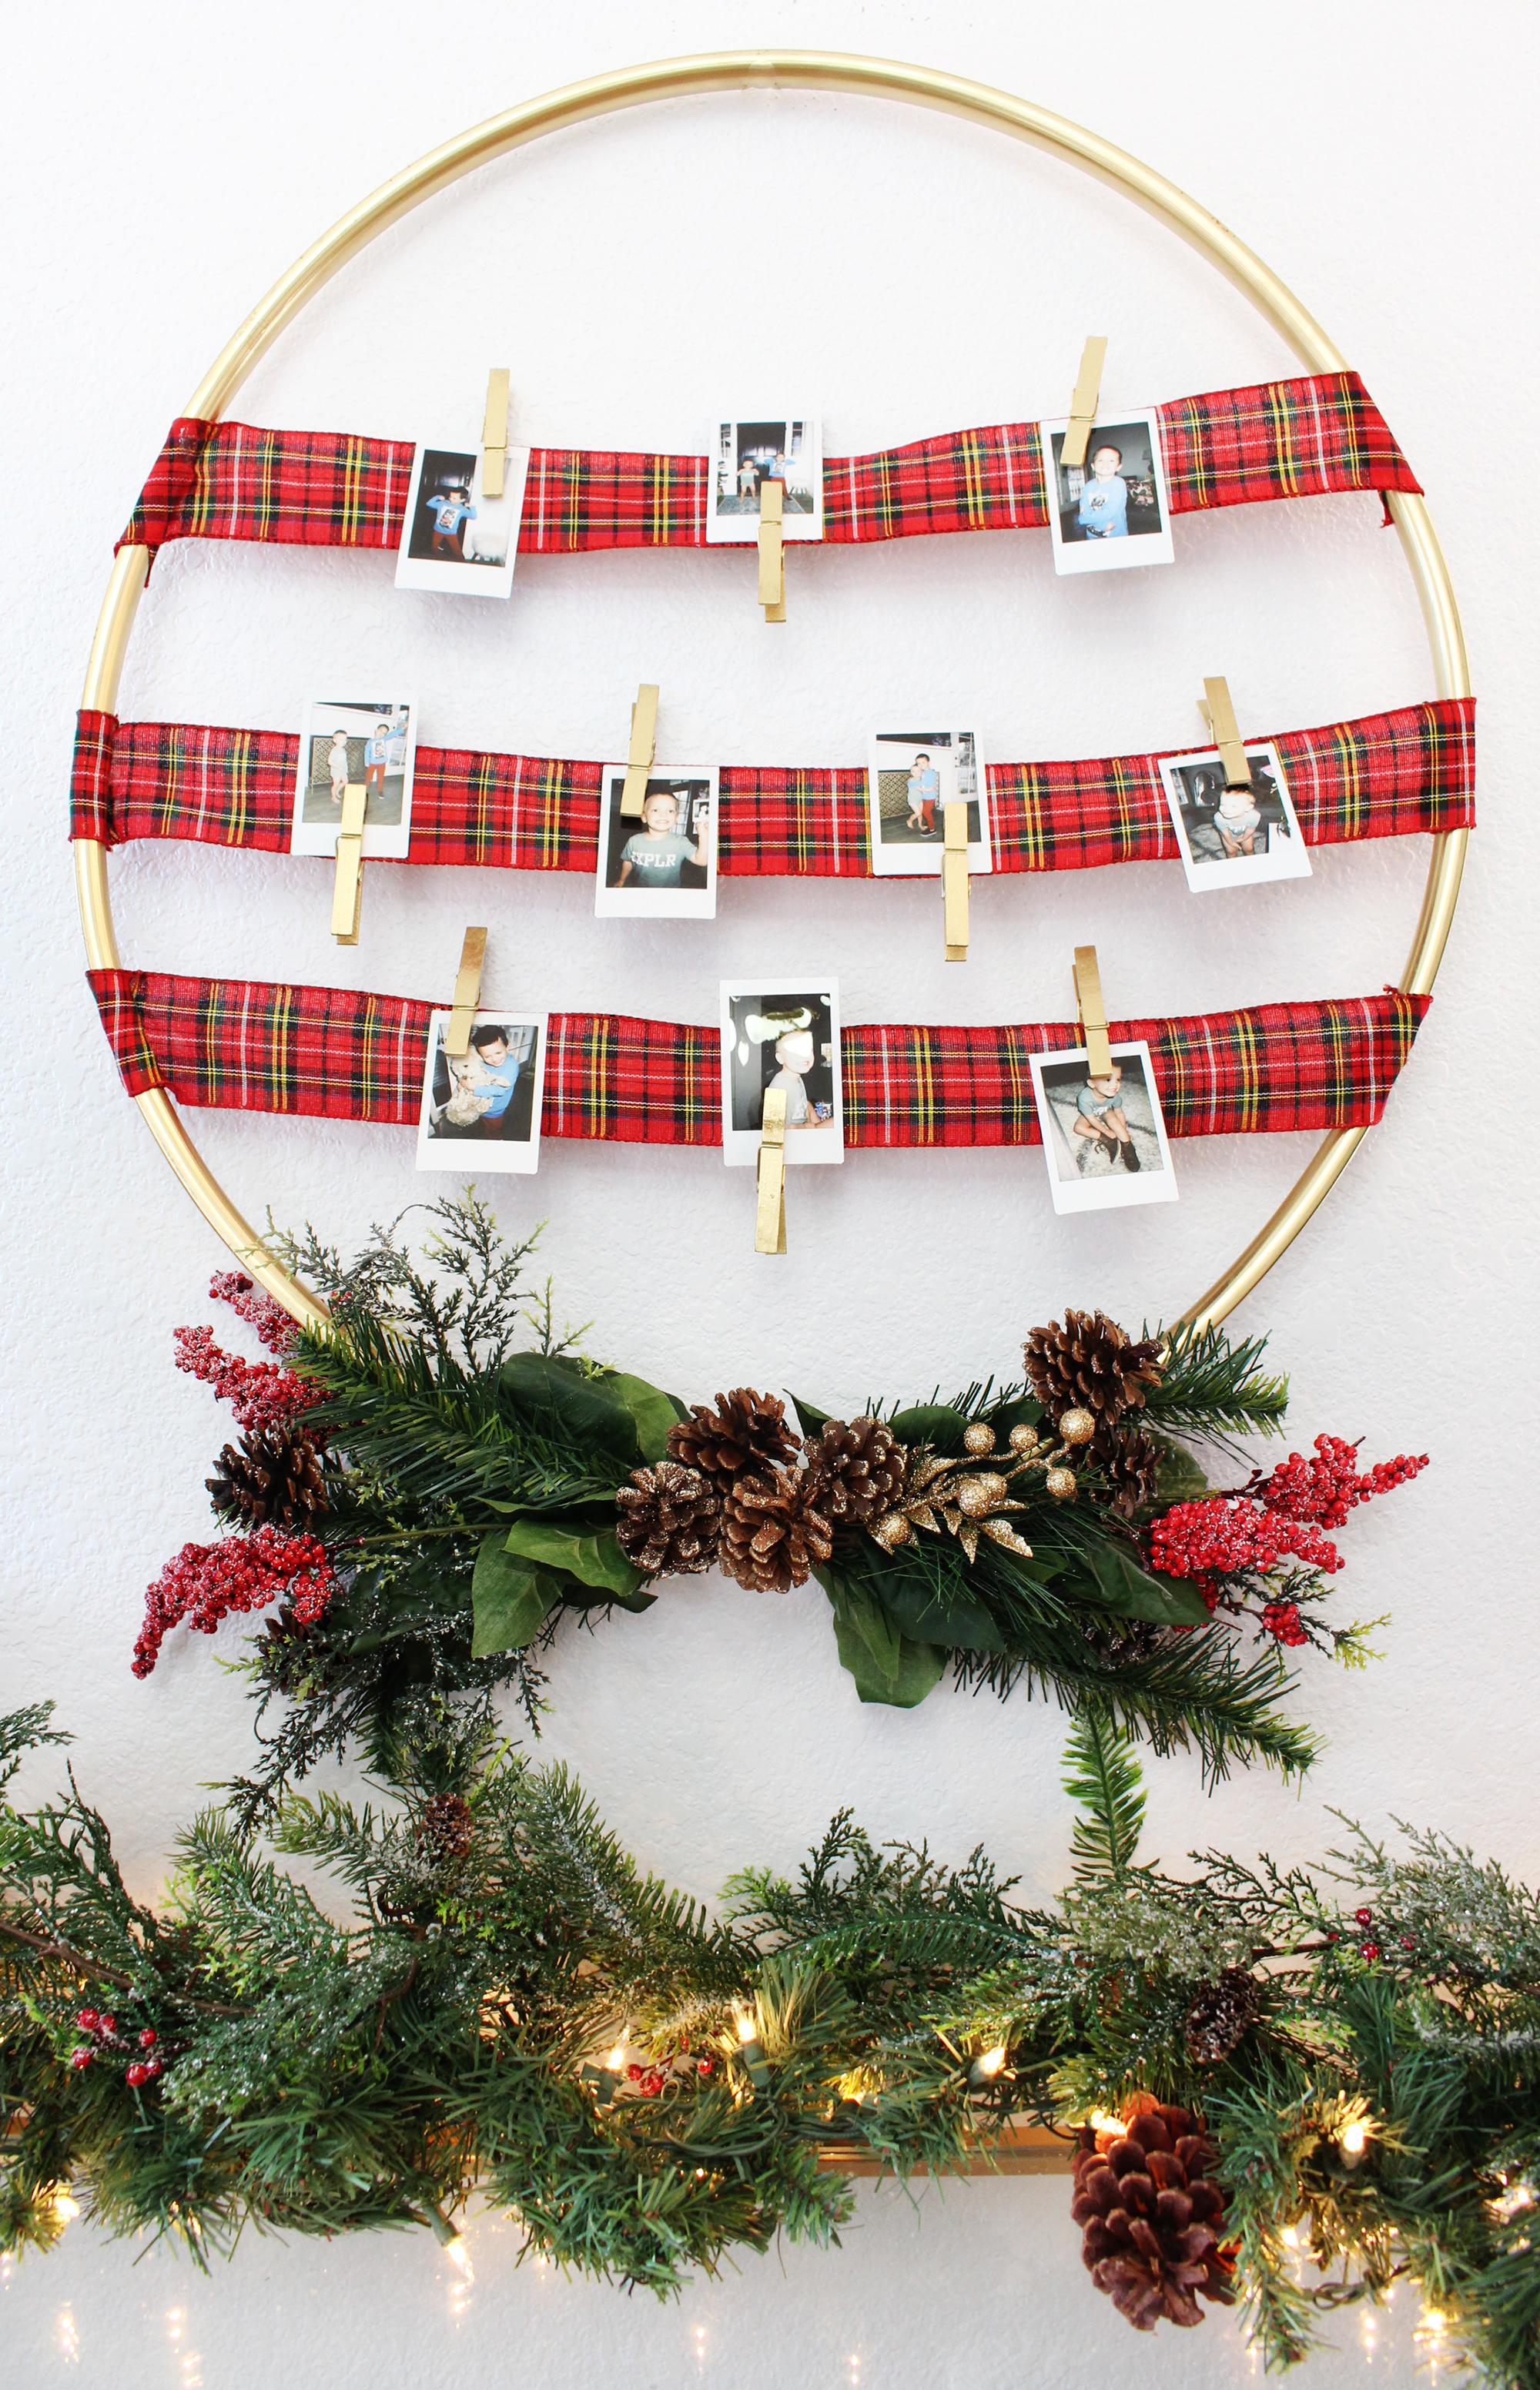 Gift idea diy photo display hoop classy clutter my in laws are always asking for updated pictures of my kids to have in their home for christmas this year i thought it would be really fun to give them a negle Gallery